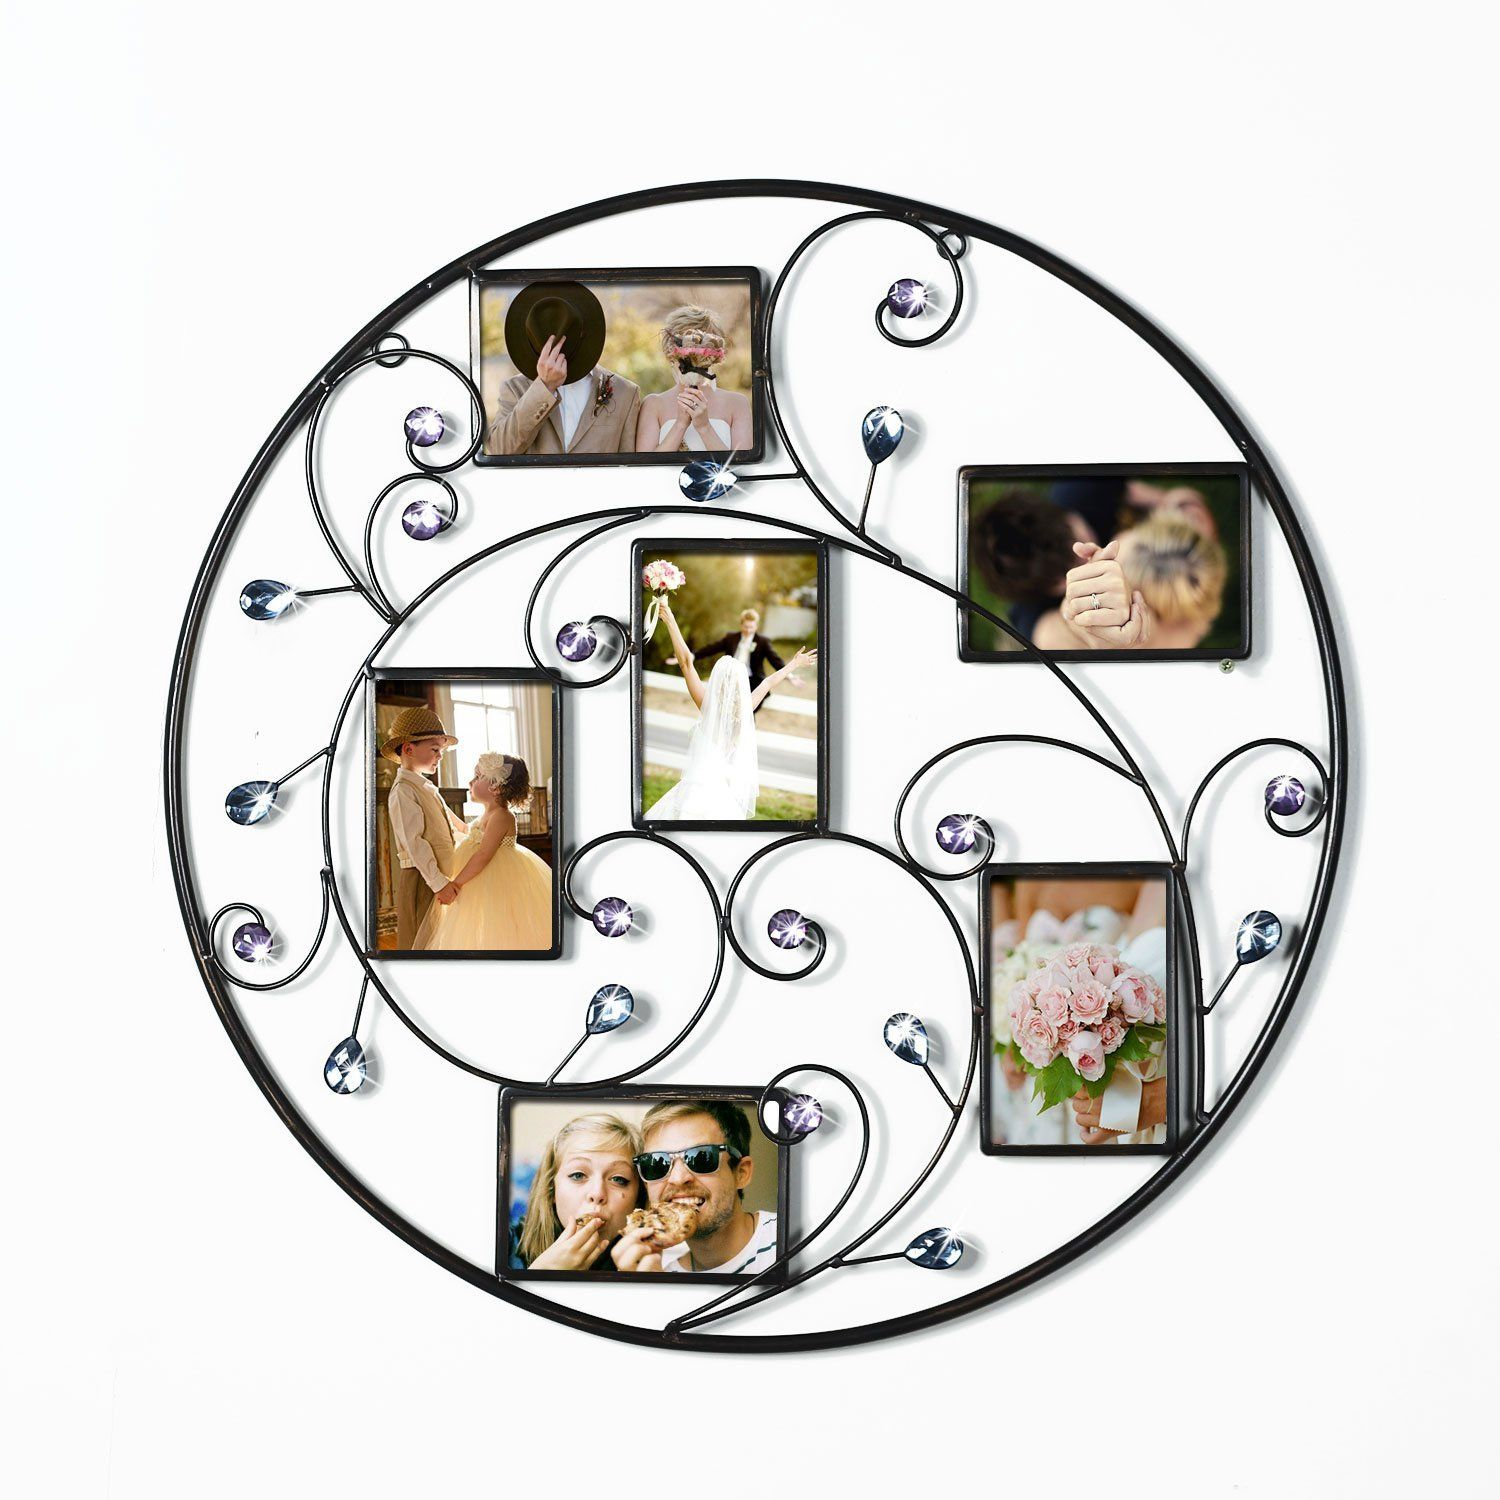 Adeco Brown Black Decorative 6 Opening Collage Bronze Iron Metal Wall Haning Scroll Picture Photo Frame Pf0597 Picture Frame Decor Metal Wall Hangings Gallery Wall Frames